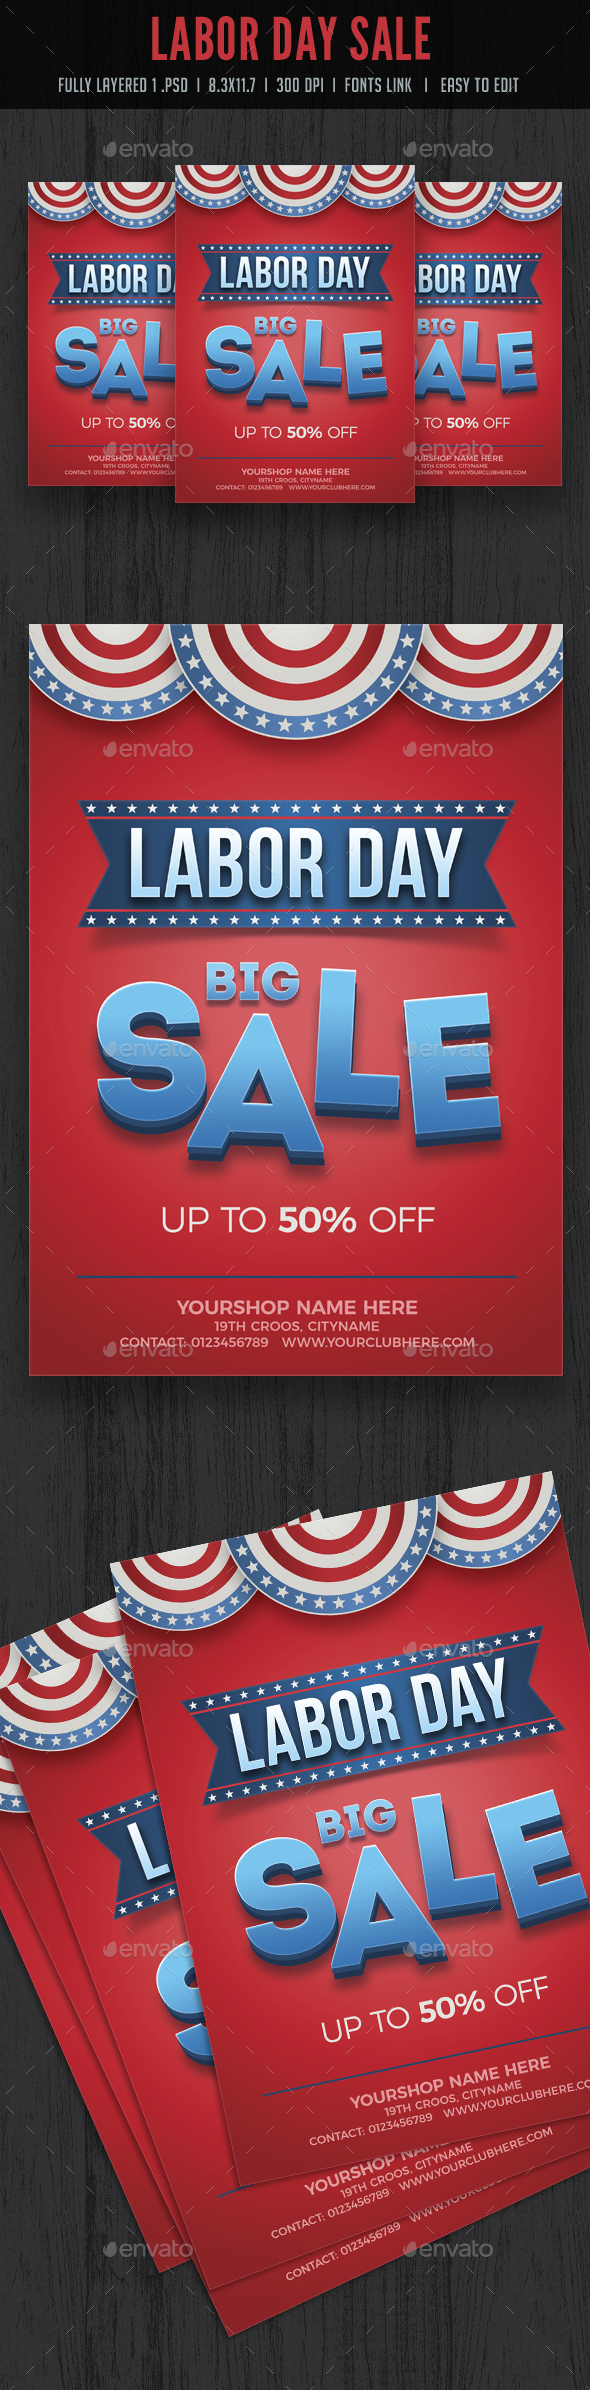 Labor Day Sale Flyer - Flyers Print Templates